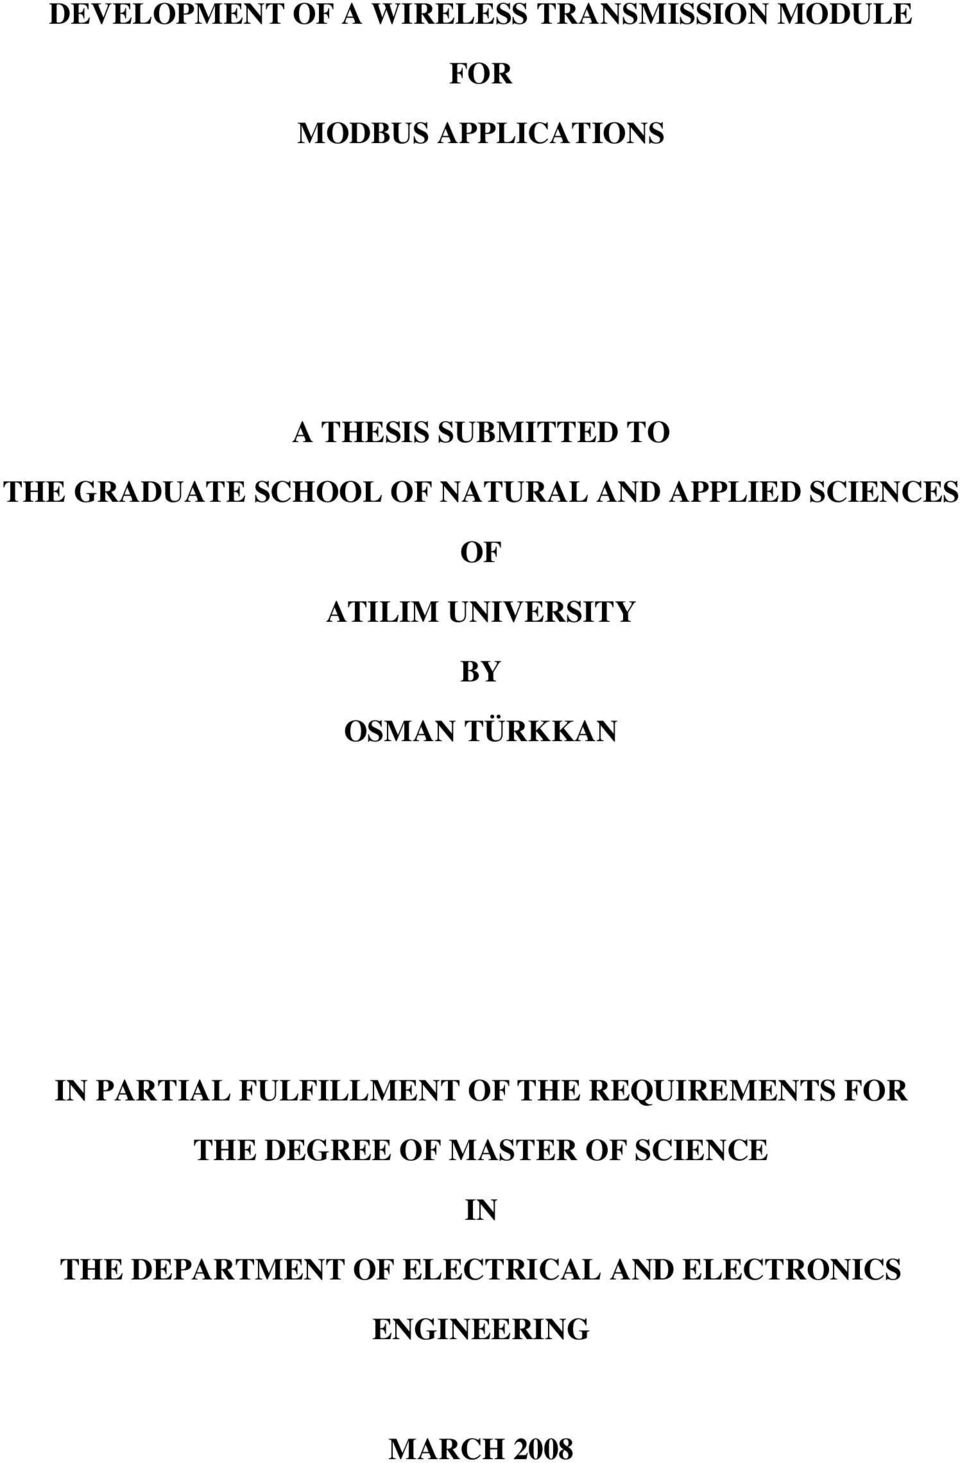 UNIVERSITY BY OSMAN TÜRKKAN IN PARTIAL FULFILLMENT OF THE REQUIREMENTS FOR THE